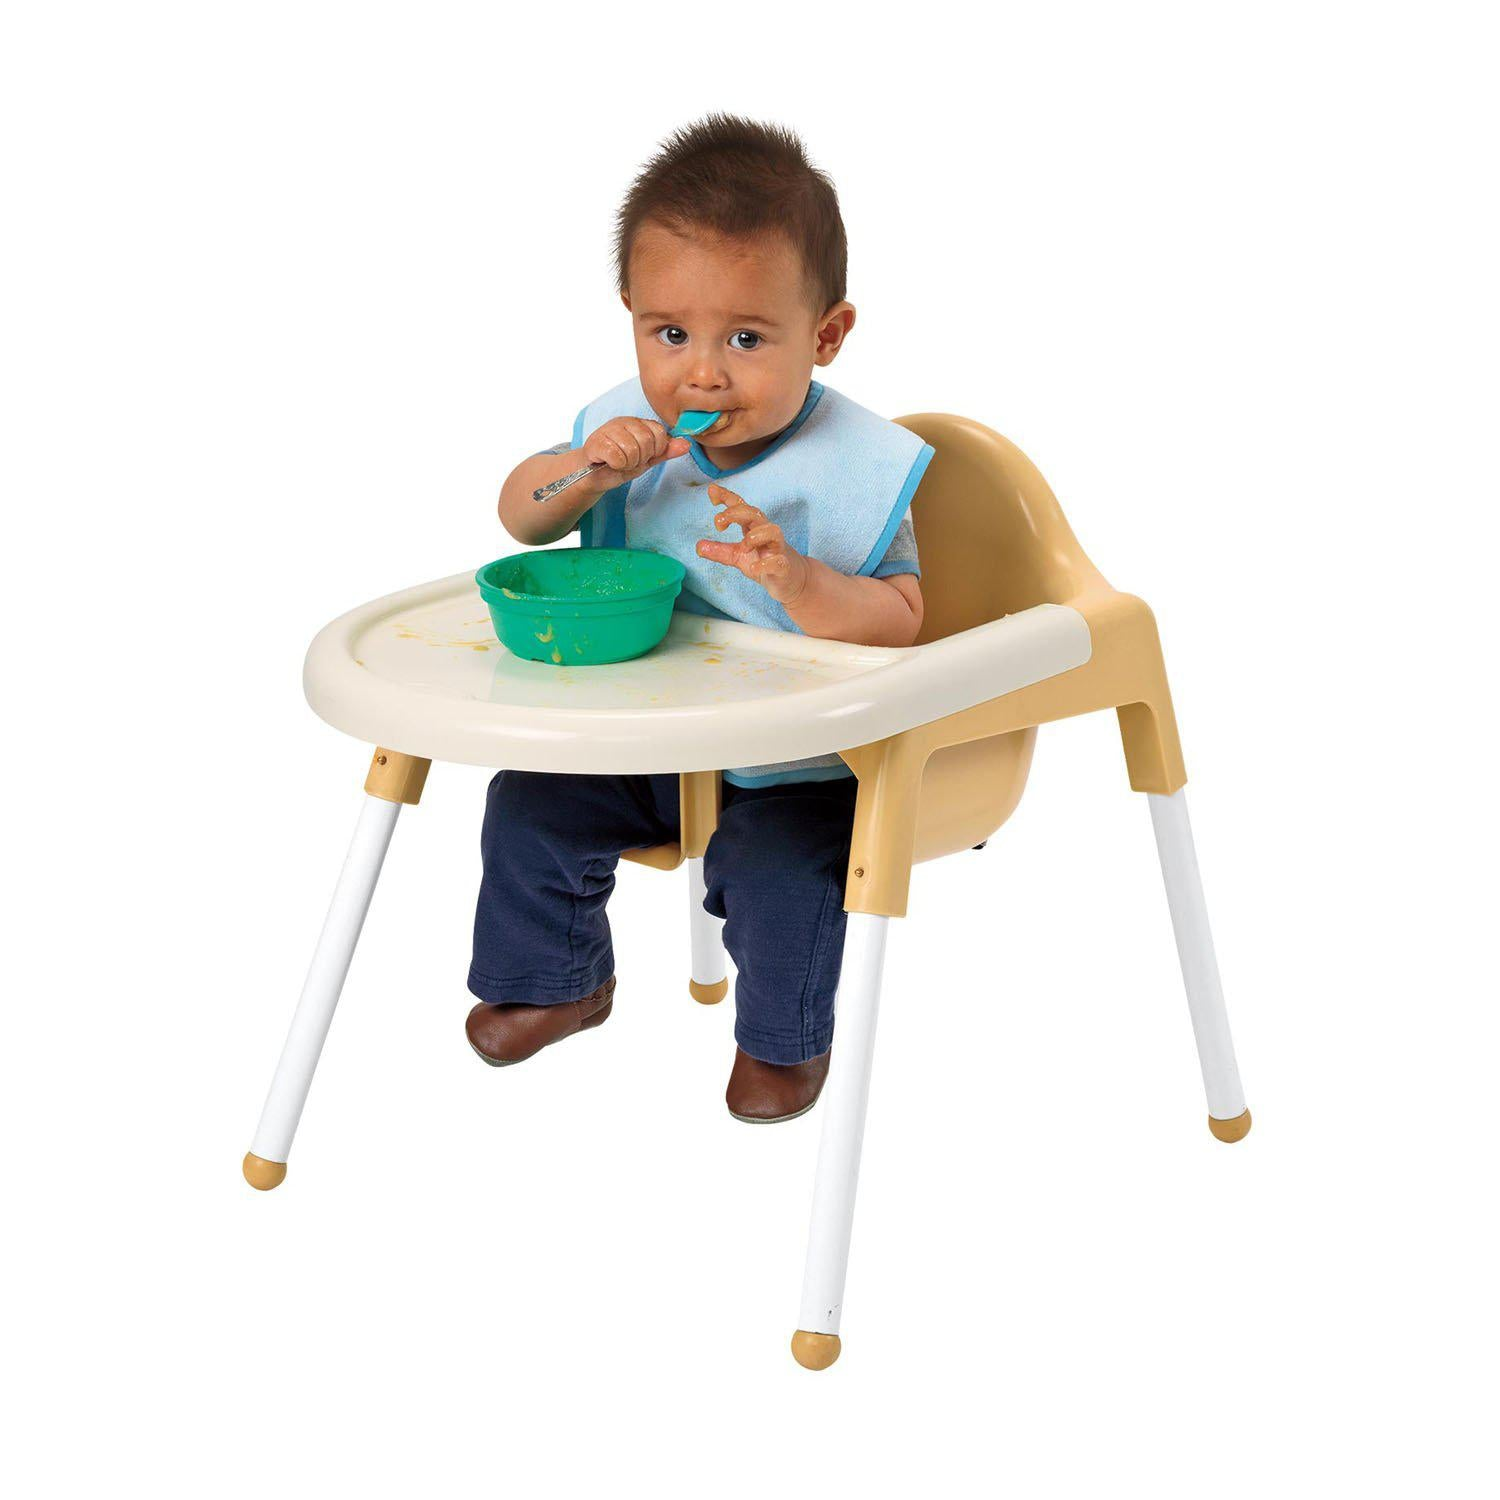 Infant/Toddler Feeding Chair